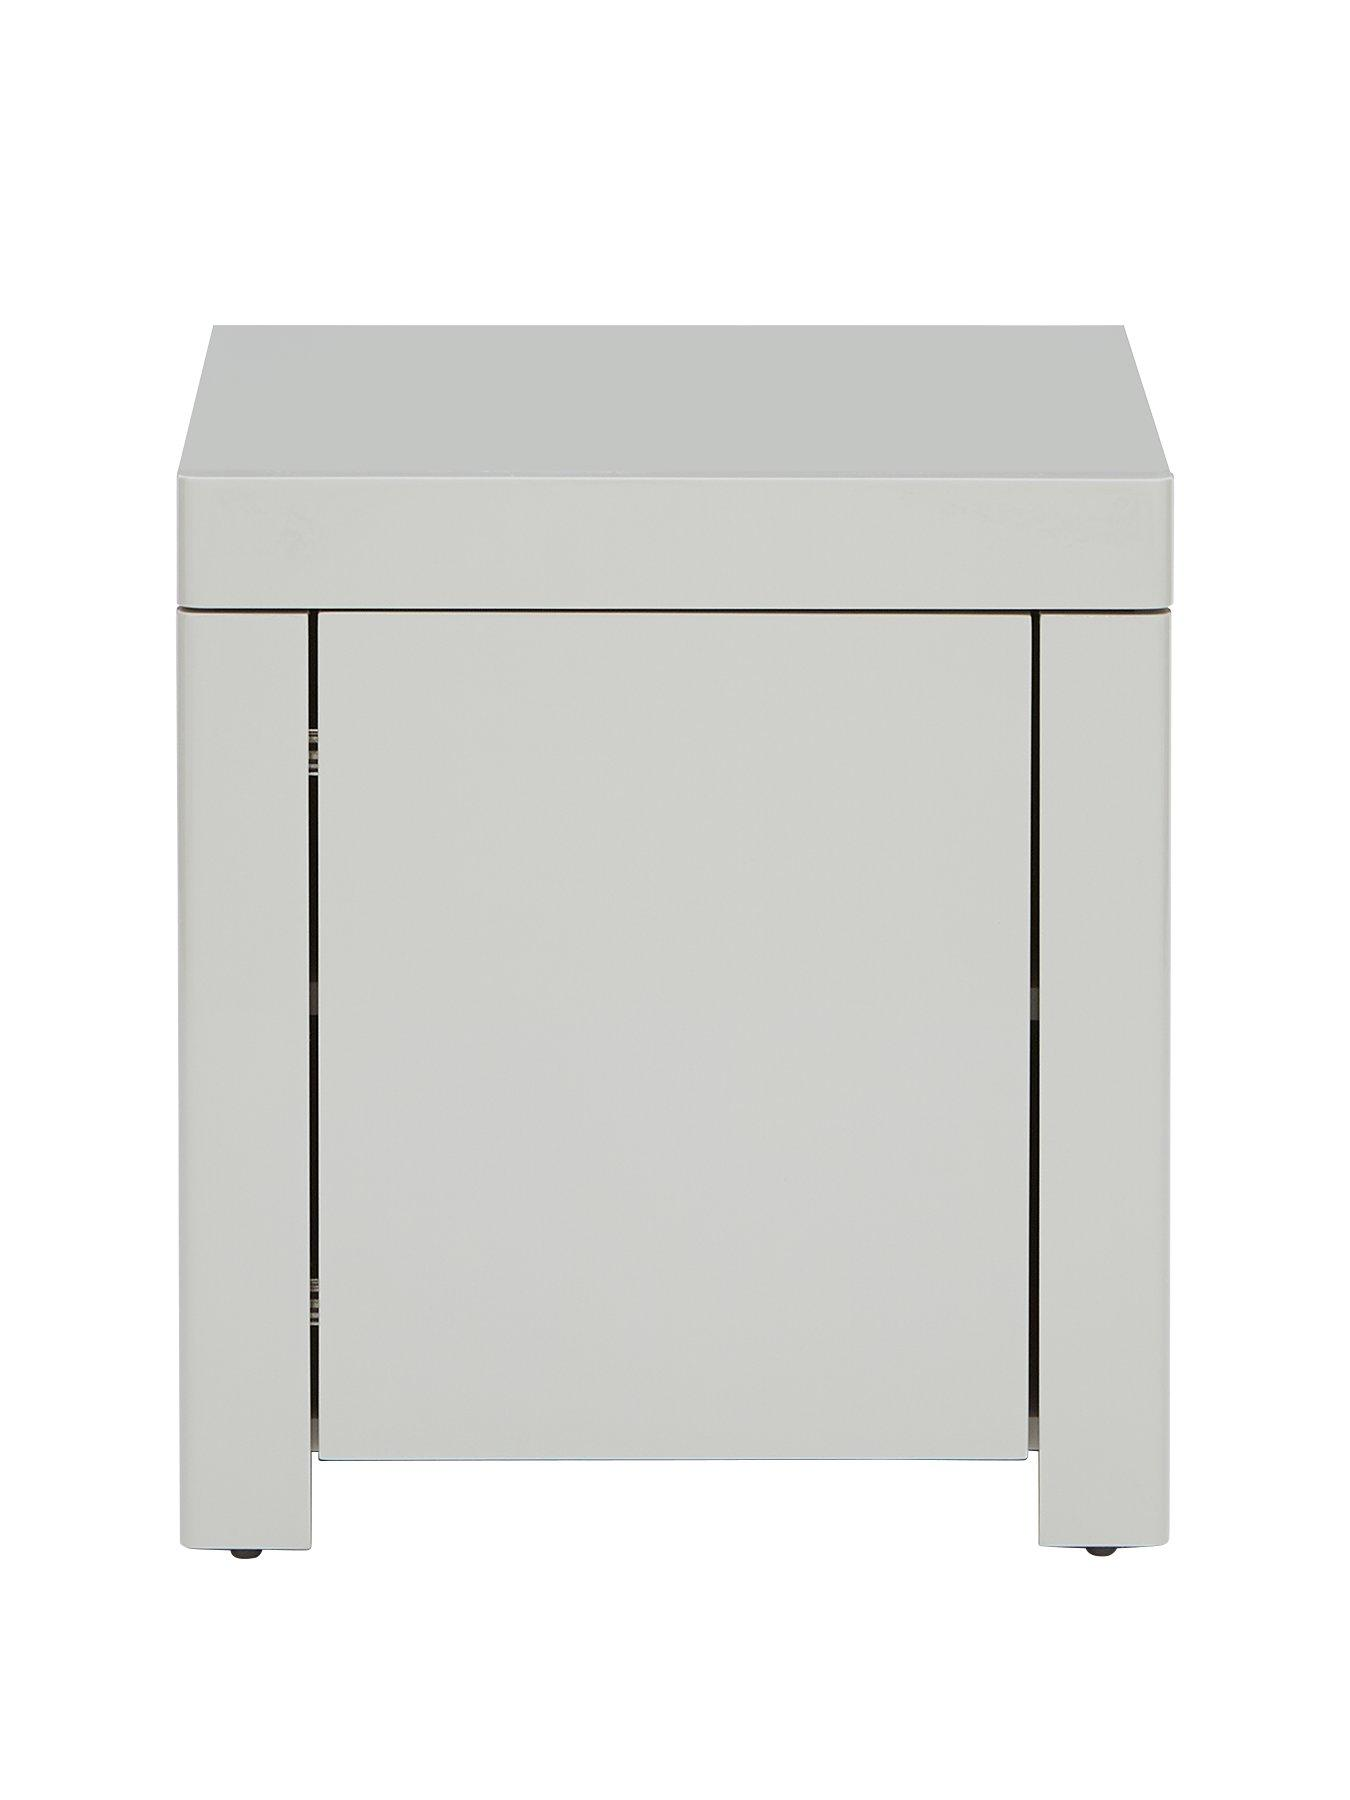 Richmond small lamp side table with drawer grey painted wooden furniture